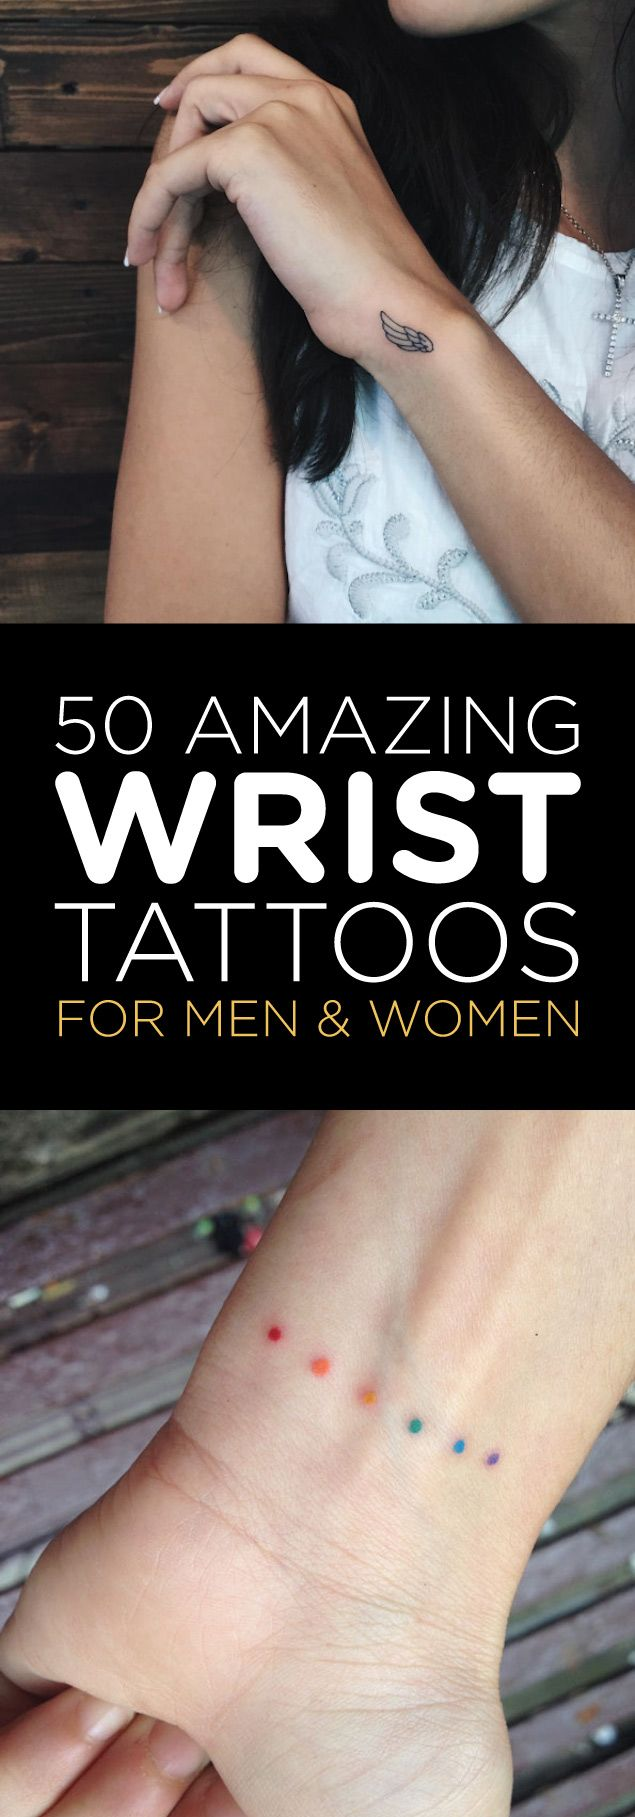 images about tattoos on pinterest tiny tattoo small tattoos